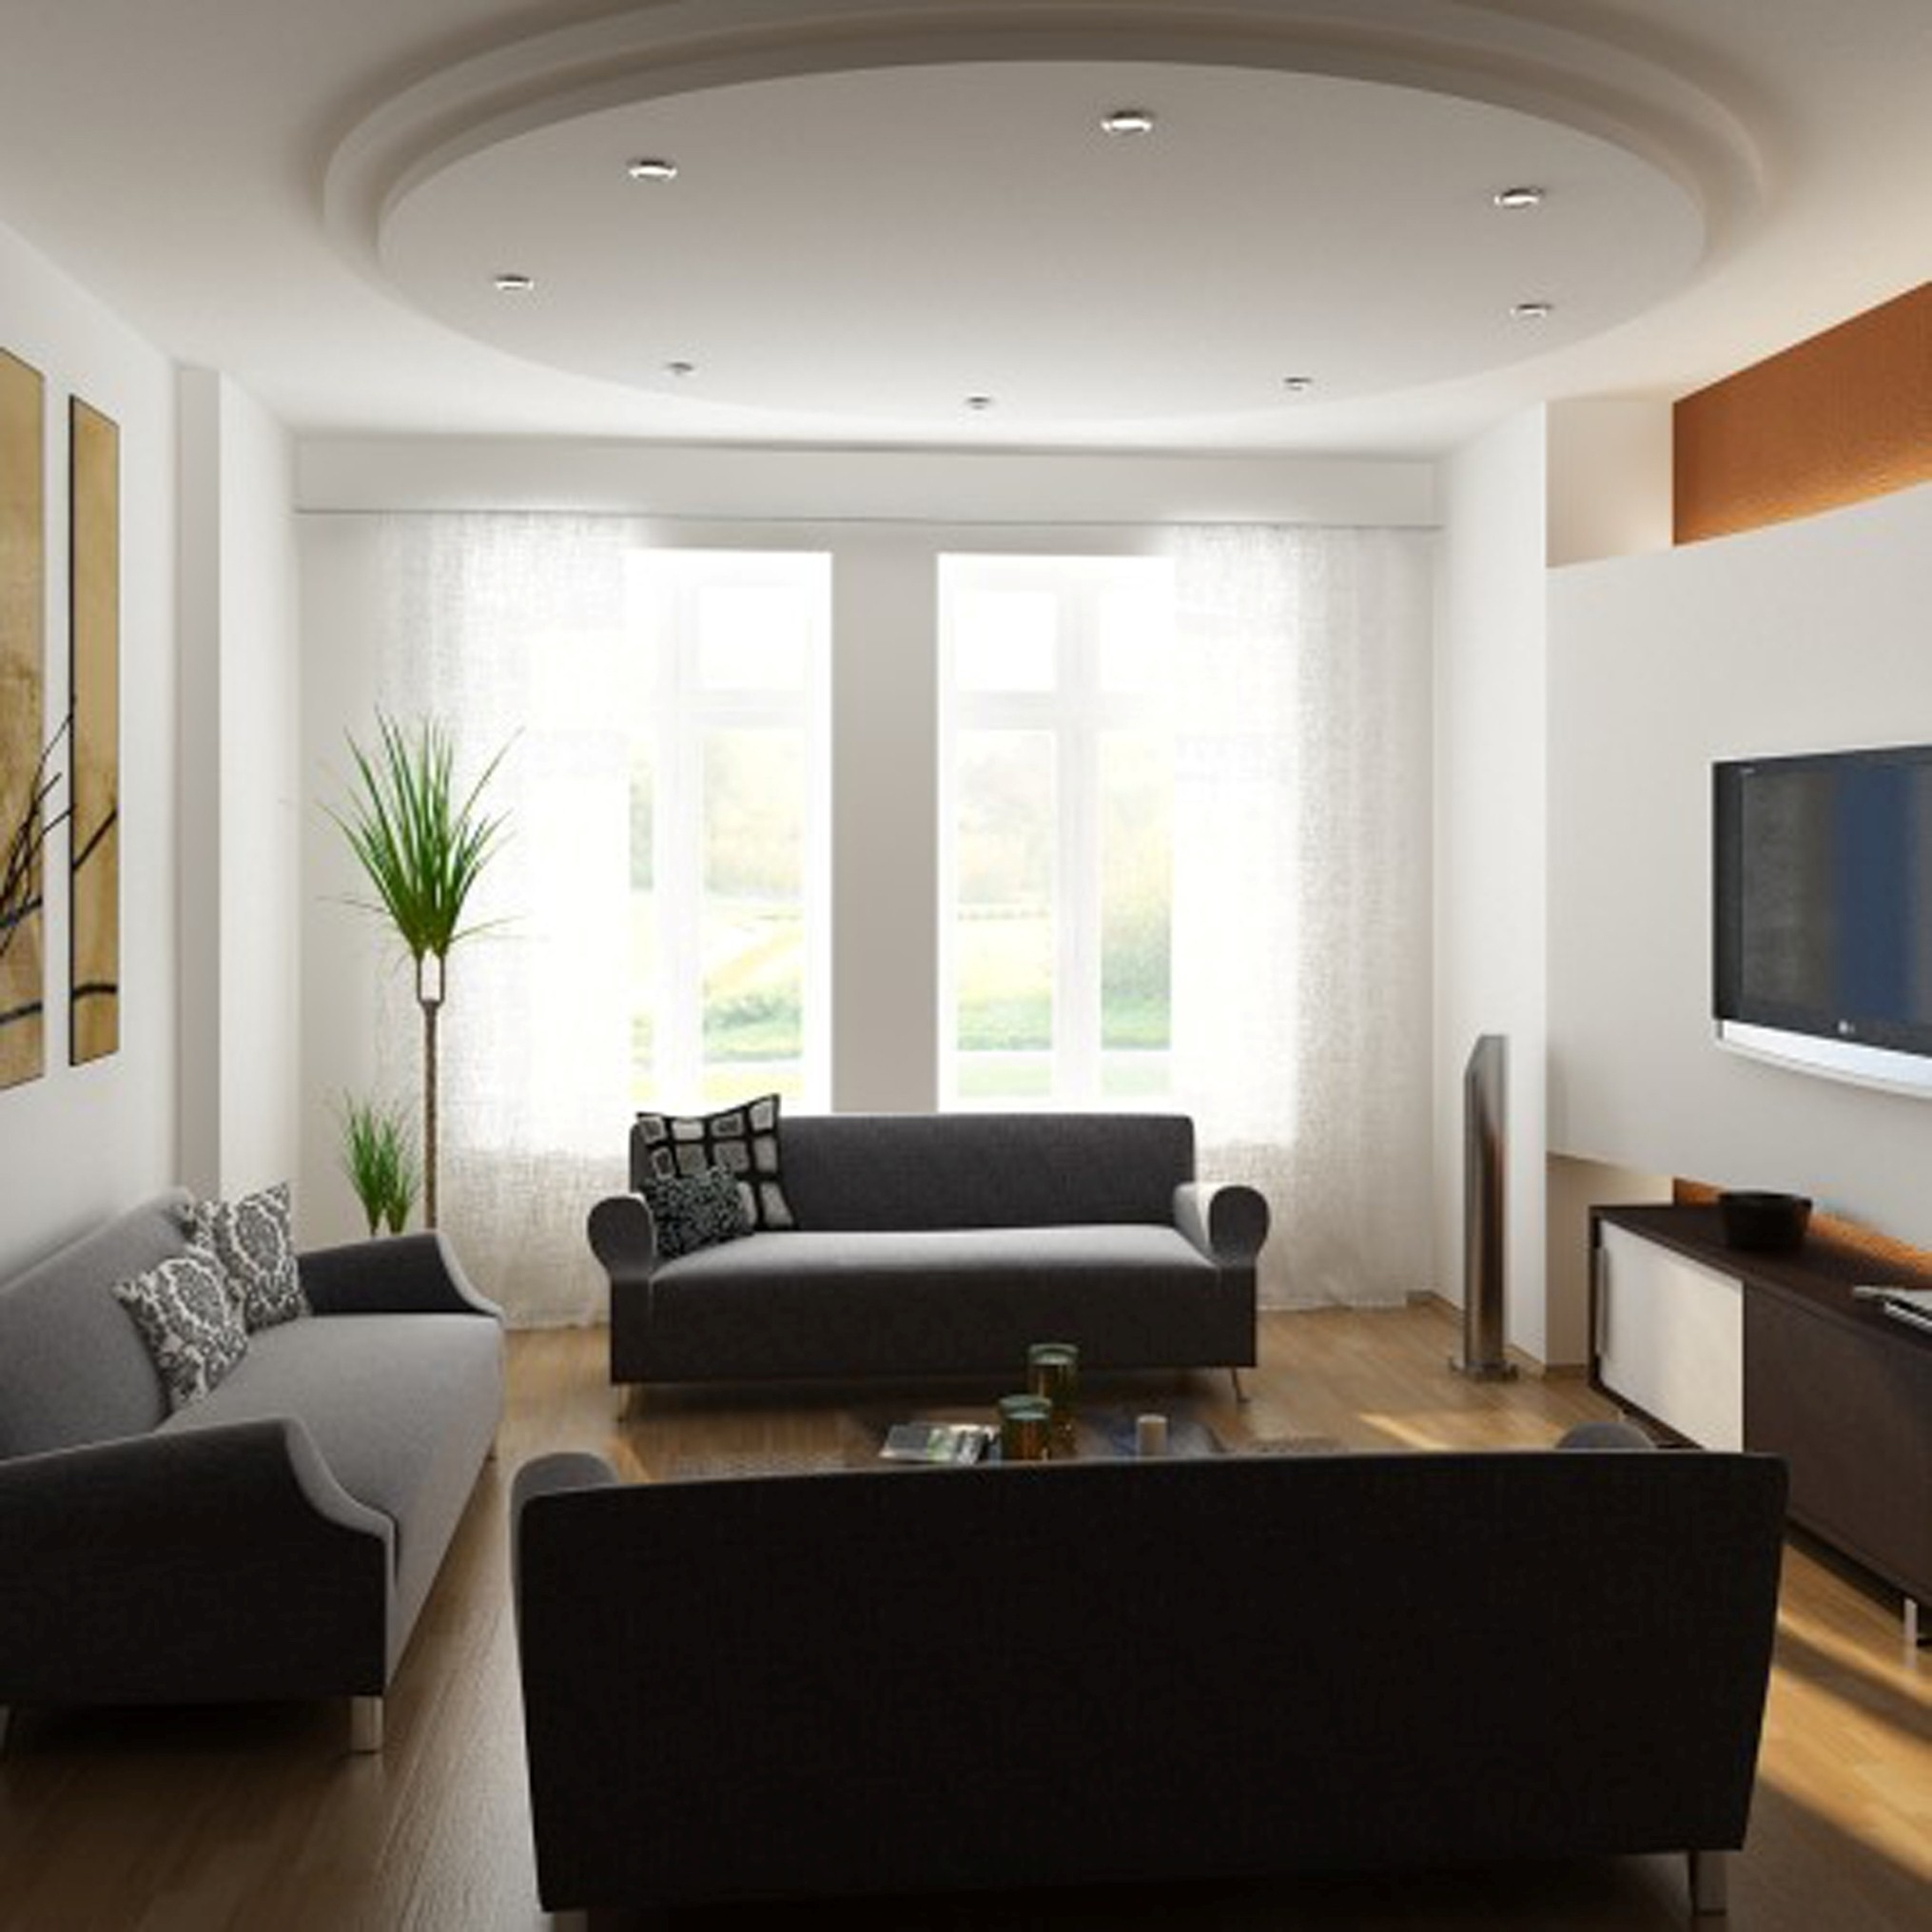 Modern Living Room Design Ideas With Wonderful Modern Rounded Drop Ceiling Ideas Also Interesting Modern Sofa Design (Image 16 of 30)